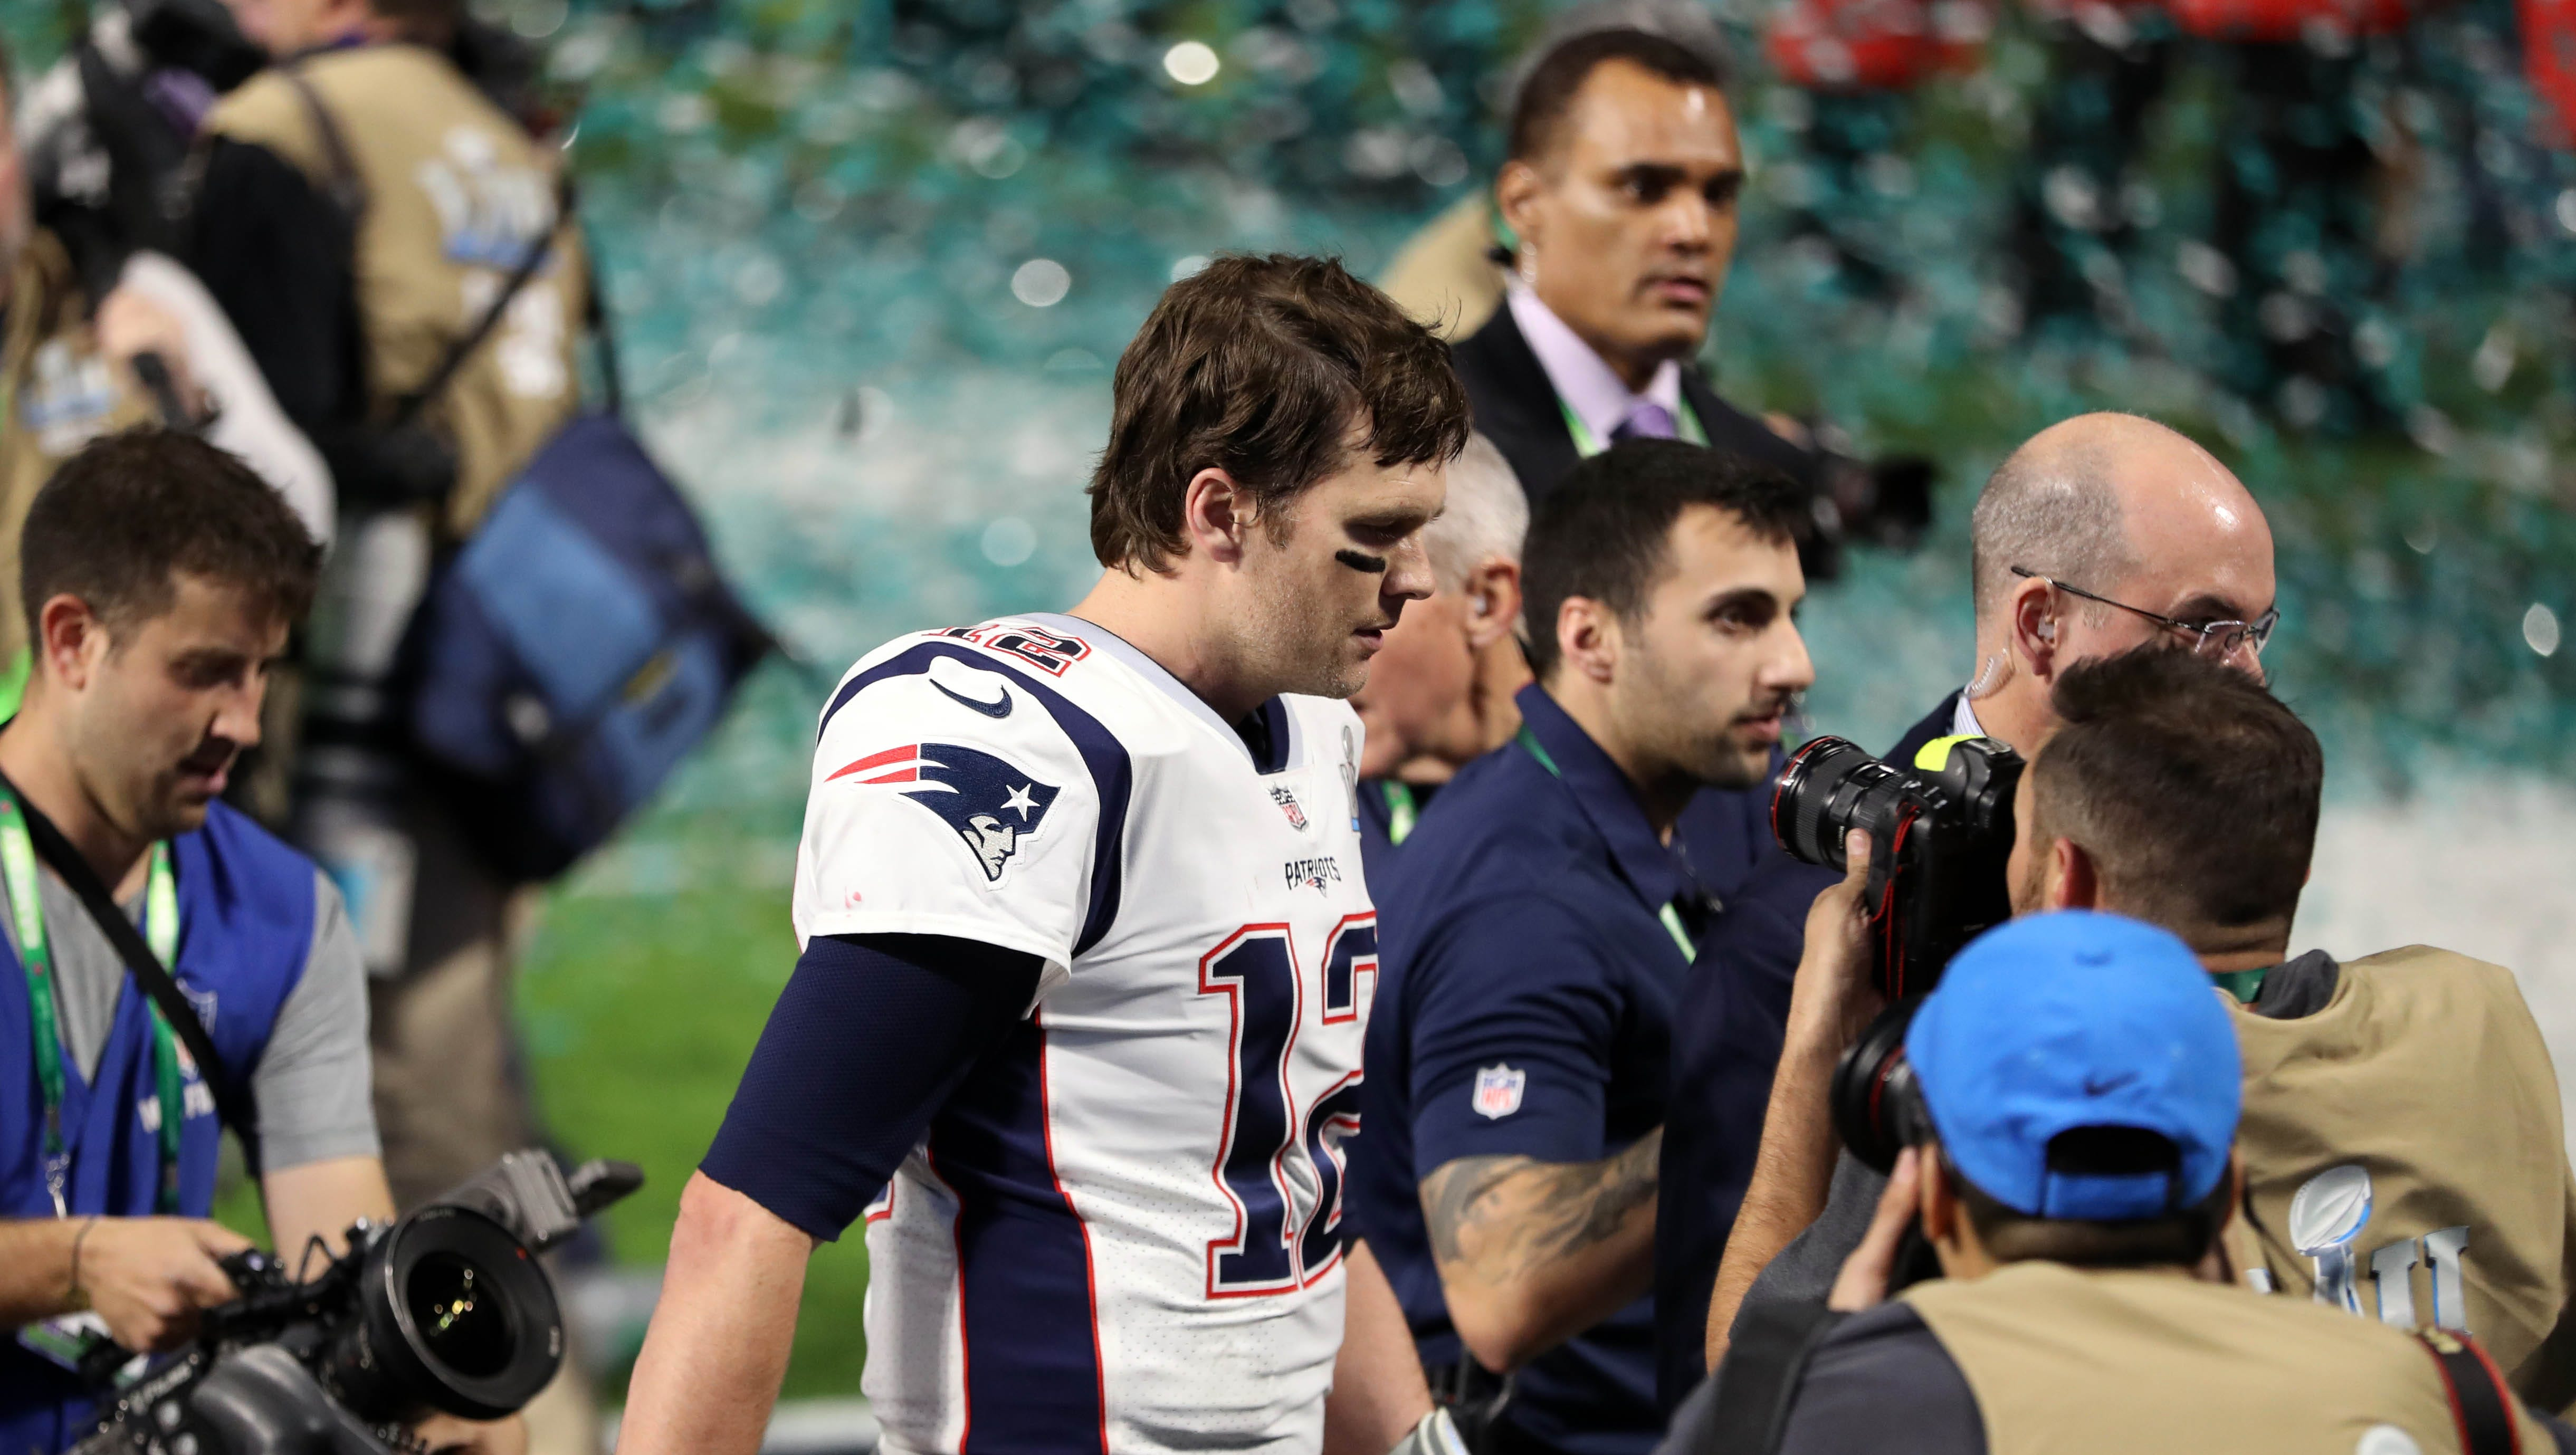 Super Bowl 2018: No jersey drama, just disappointment for Tom Brady